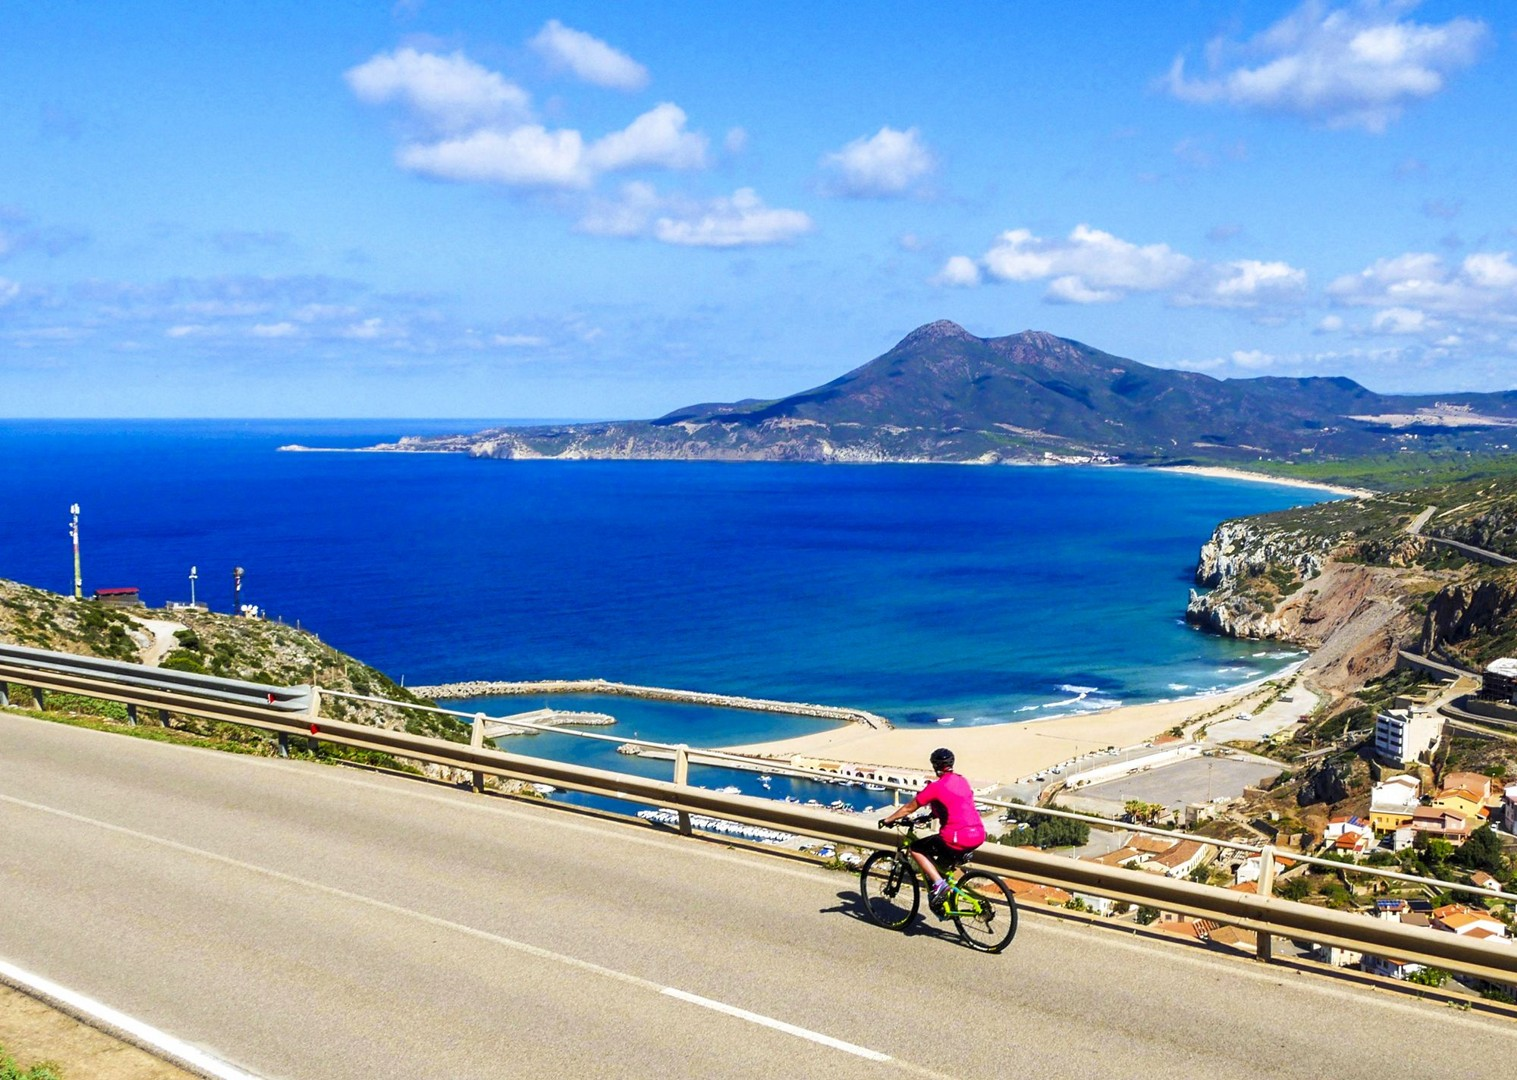 cycling-in-italy-leisure-scenery-sardinian-sea.jpg - Italy - Sardinia - Island Flavours - Guided Leisure Cycling Holiday - Leisure Cycling